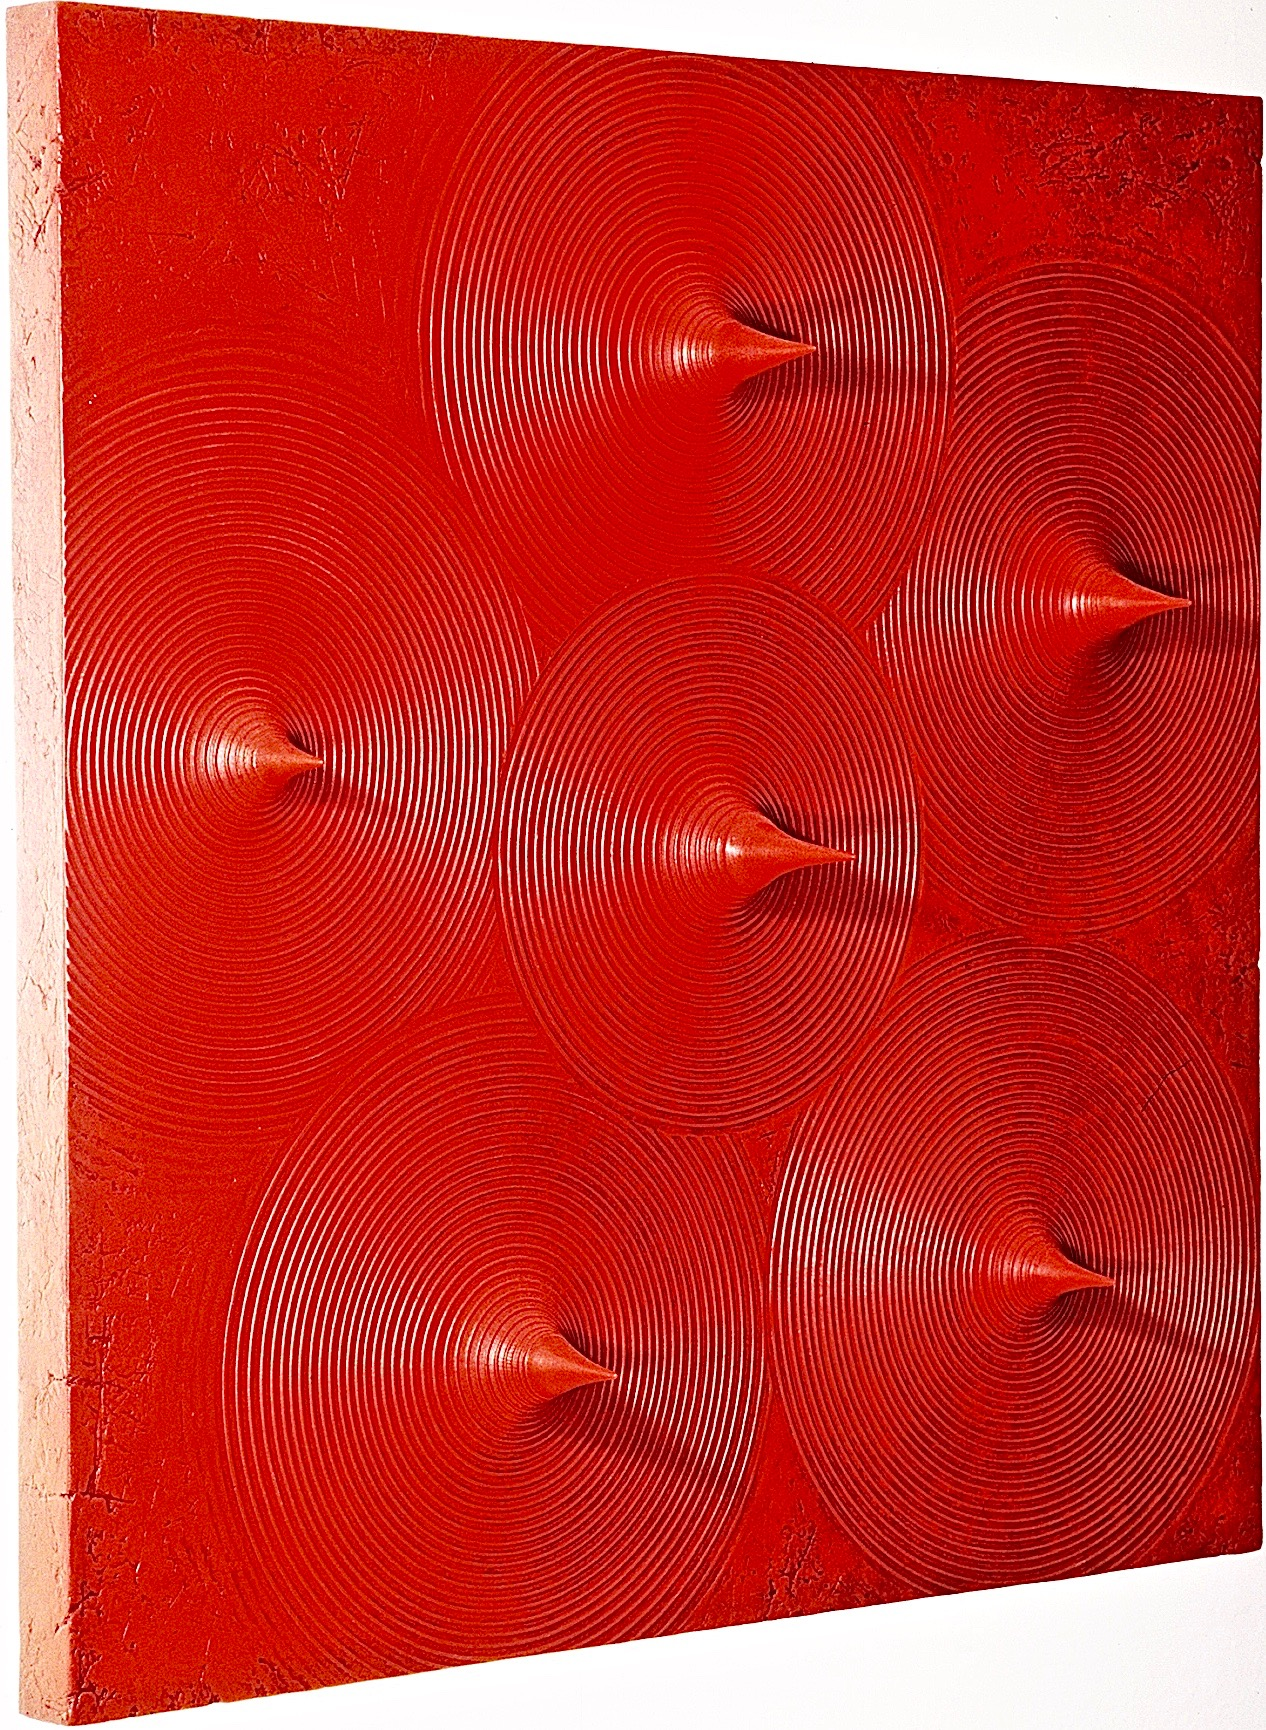 Thomas Coffin - Spikes (red) - side view